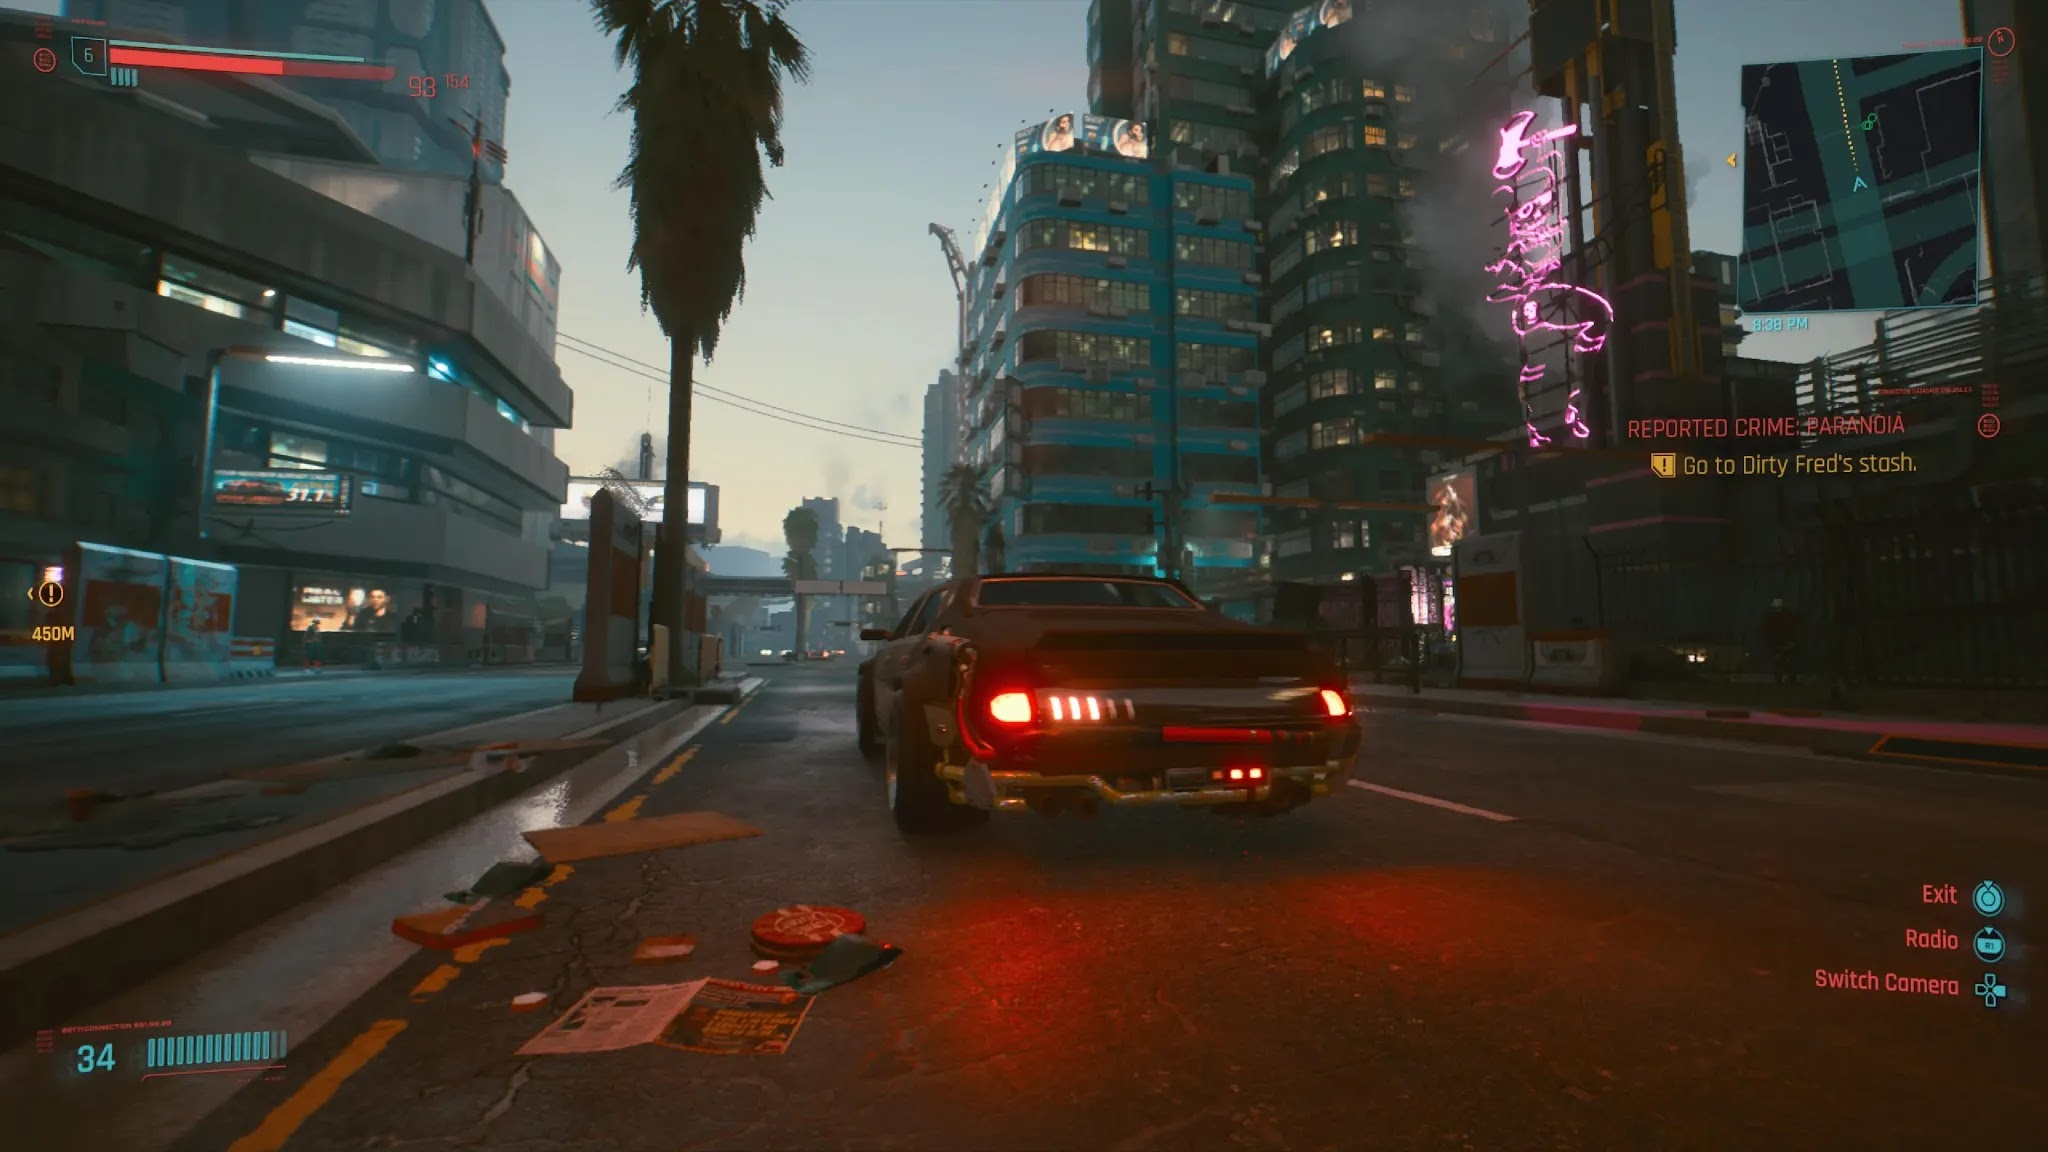 Is the shell going to explode in Cyberpunk 2077